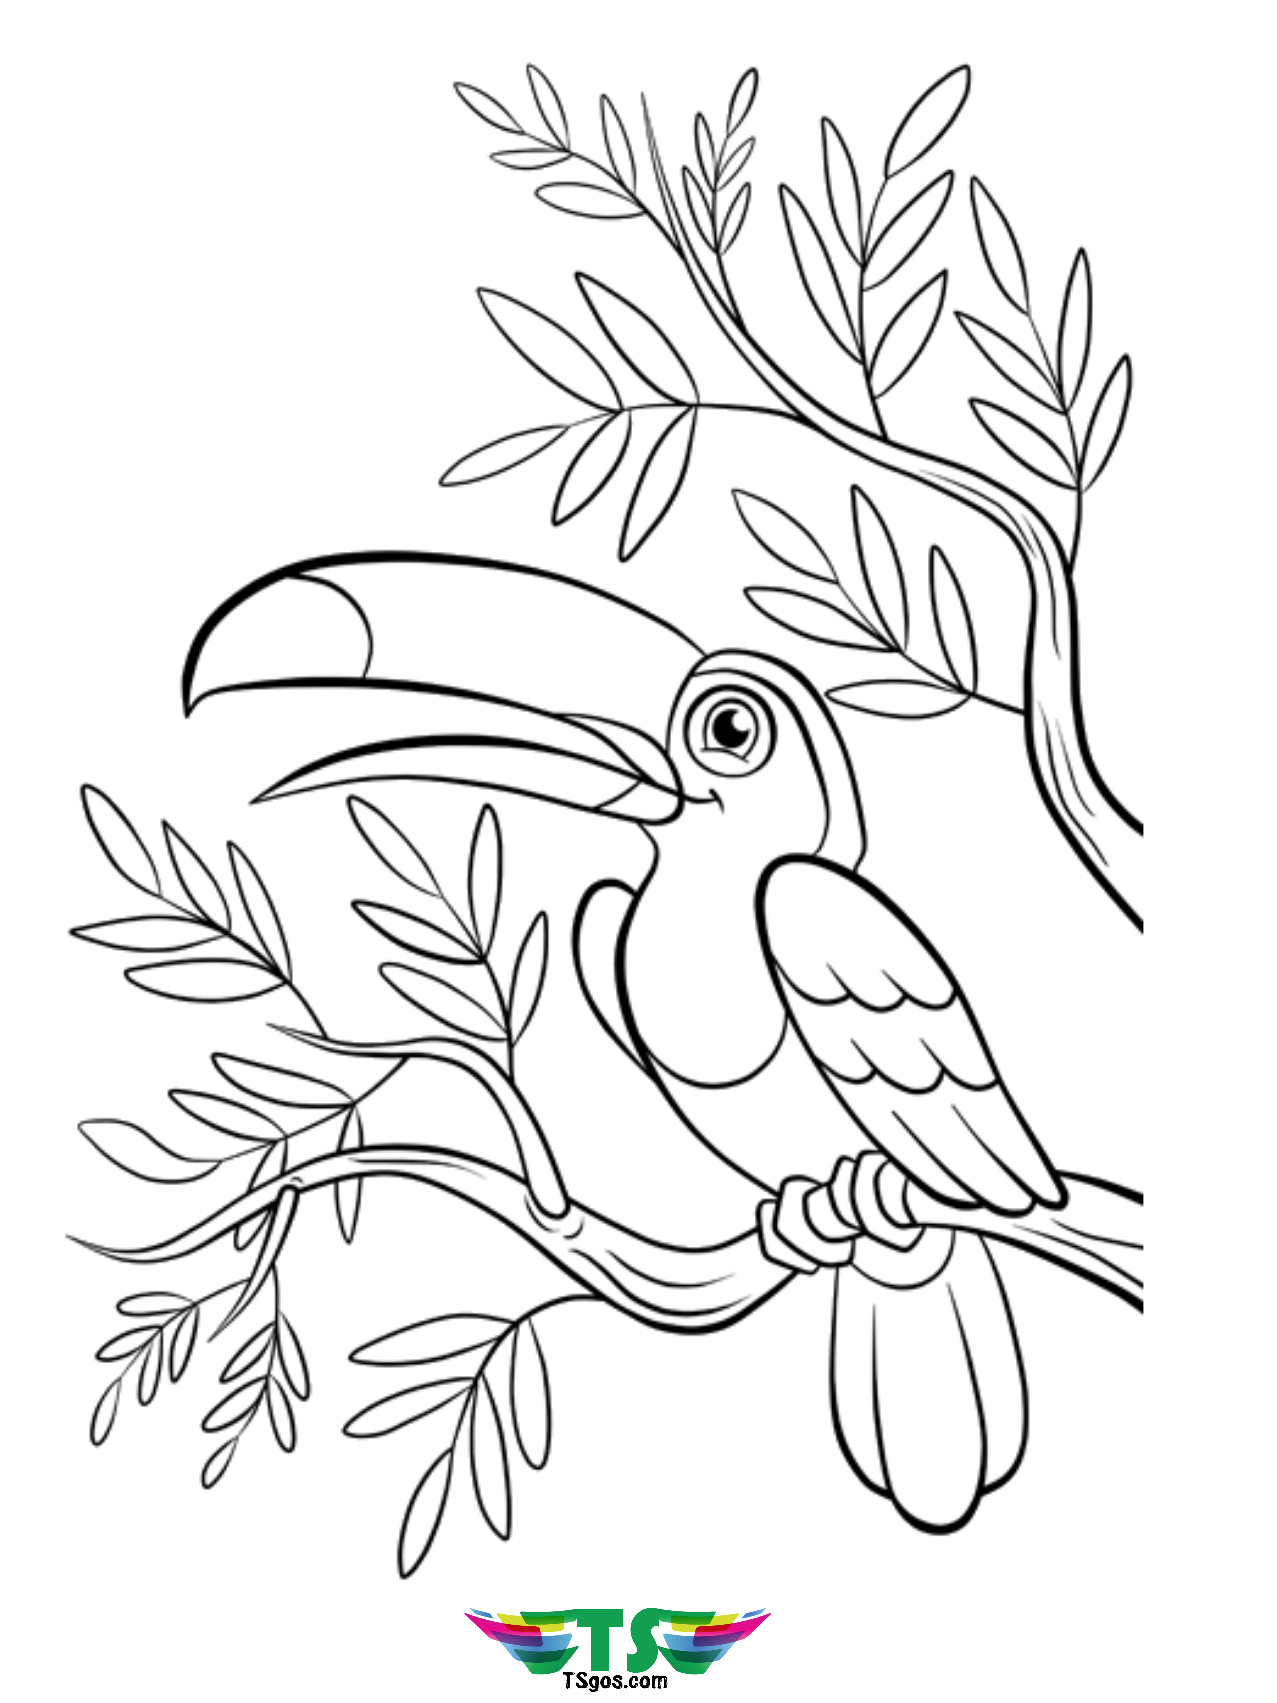 printable bird coloring pages beautiful bird coloring page free download tsgoscom bird coloring printable pages